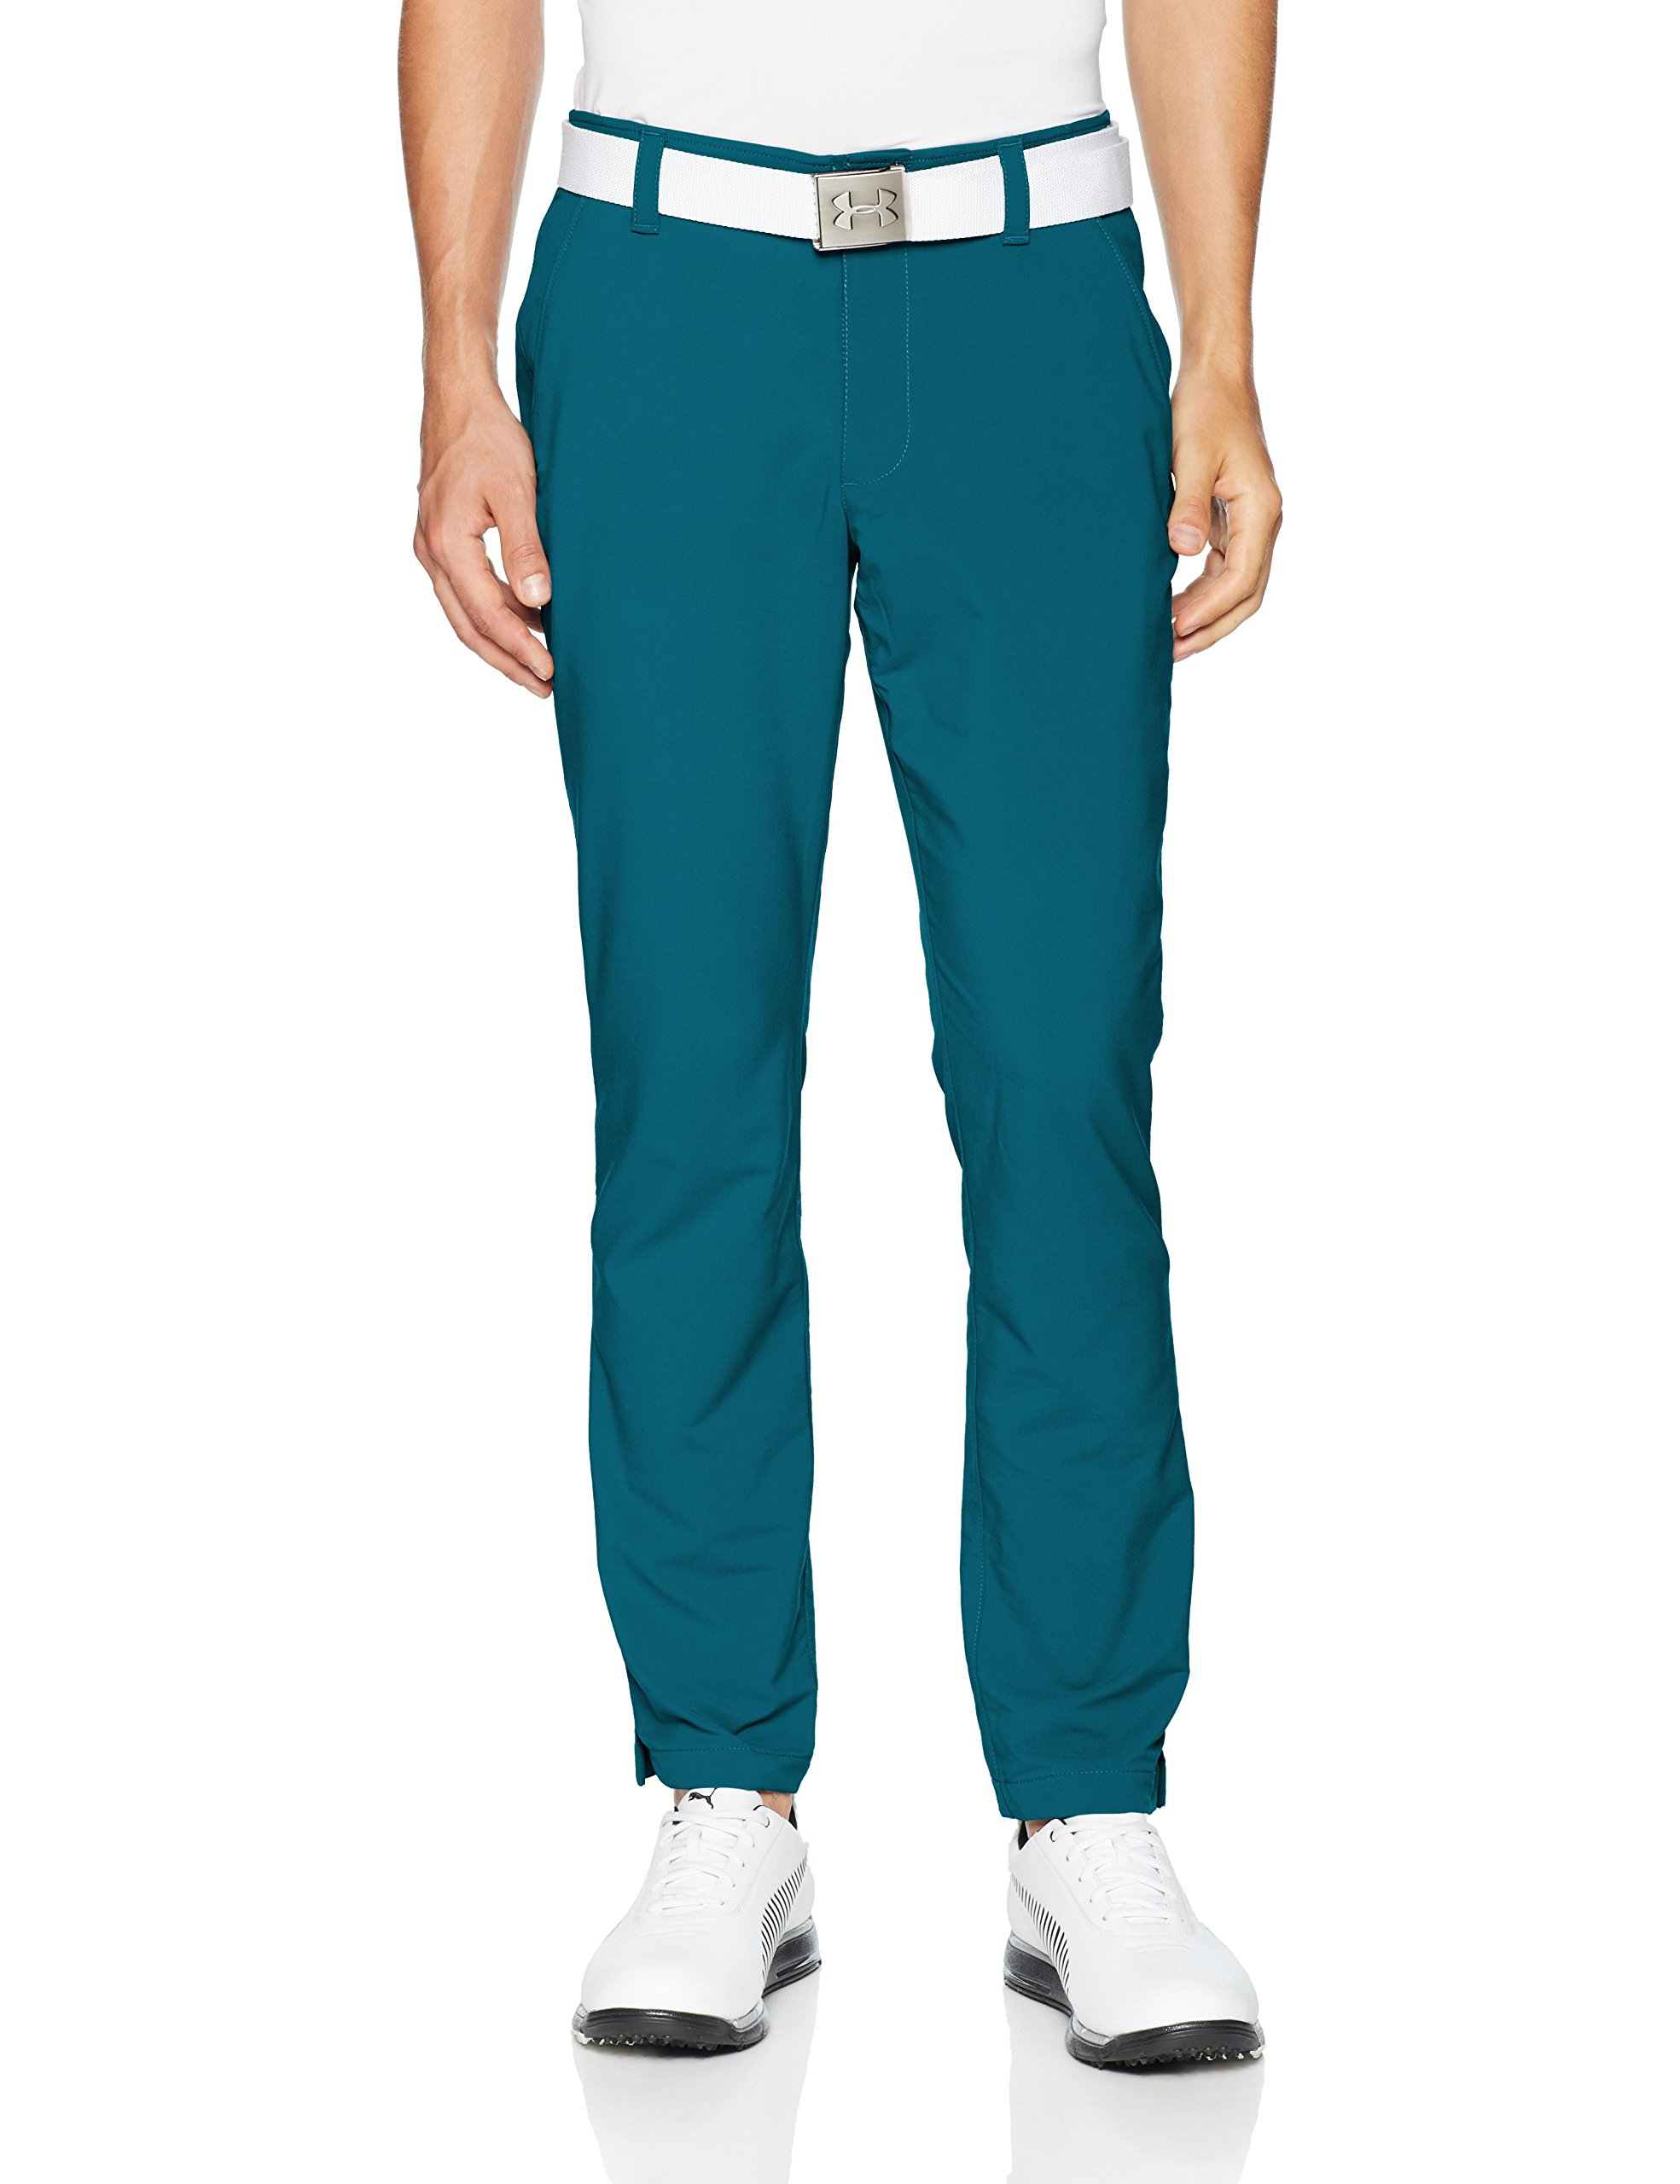 Under Armour Men's Match Play Golf Tapered Pants, Techno Teal (489)/Techno Teal, 30/30